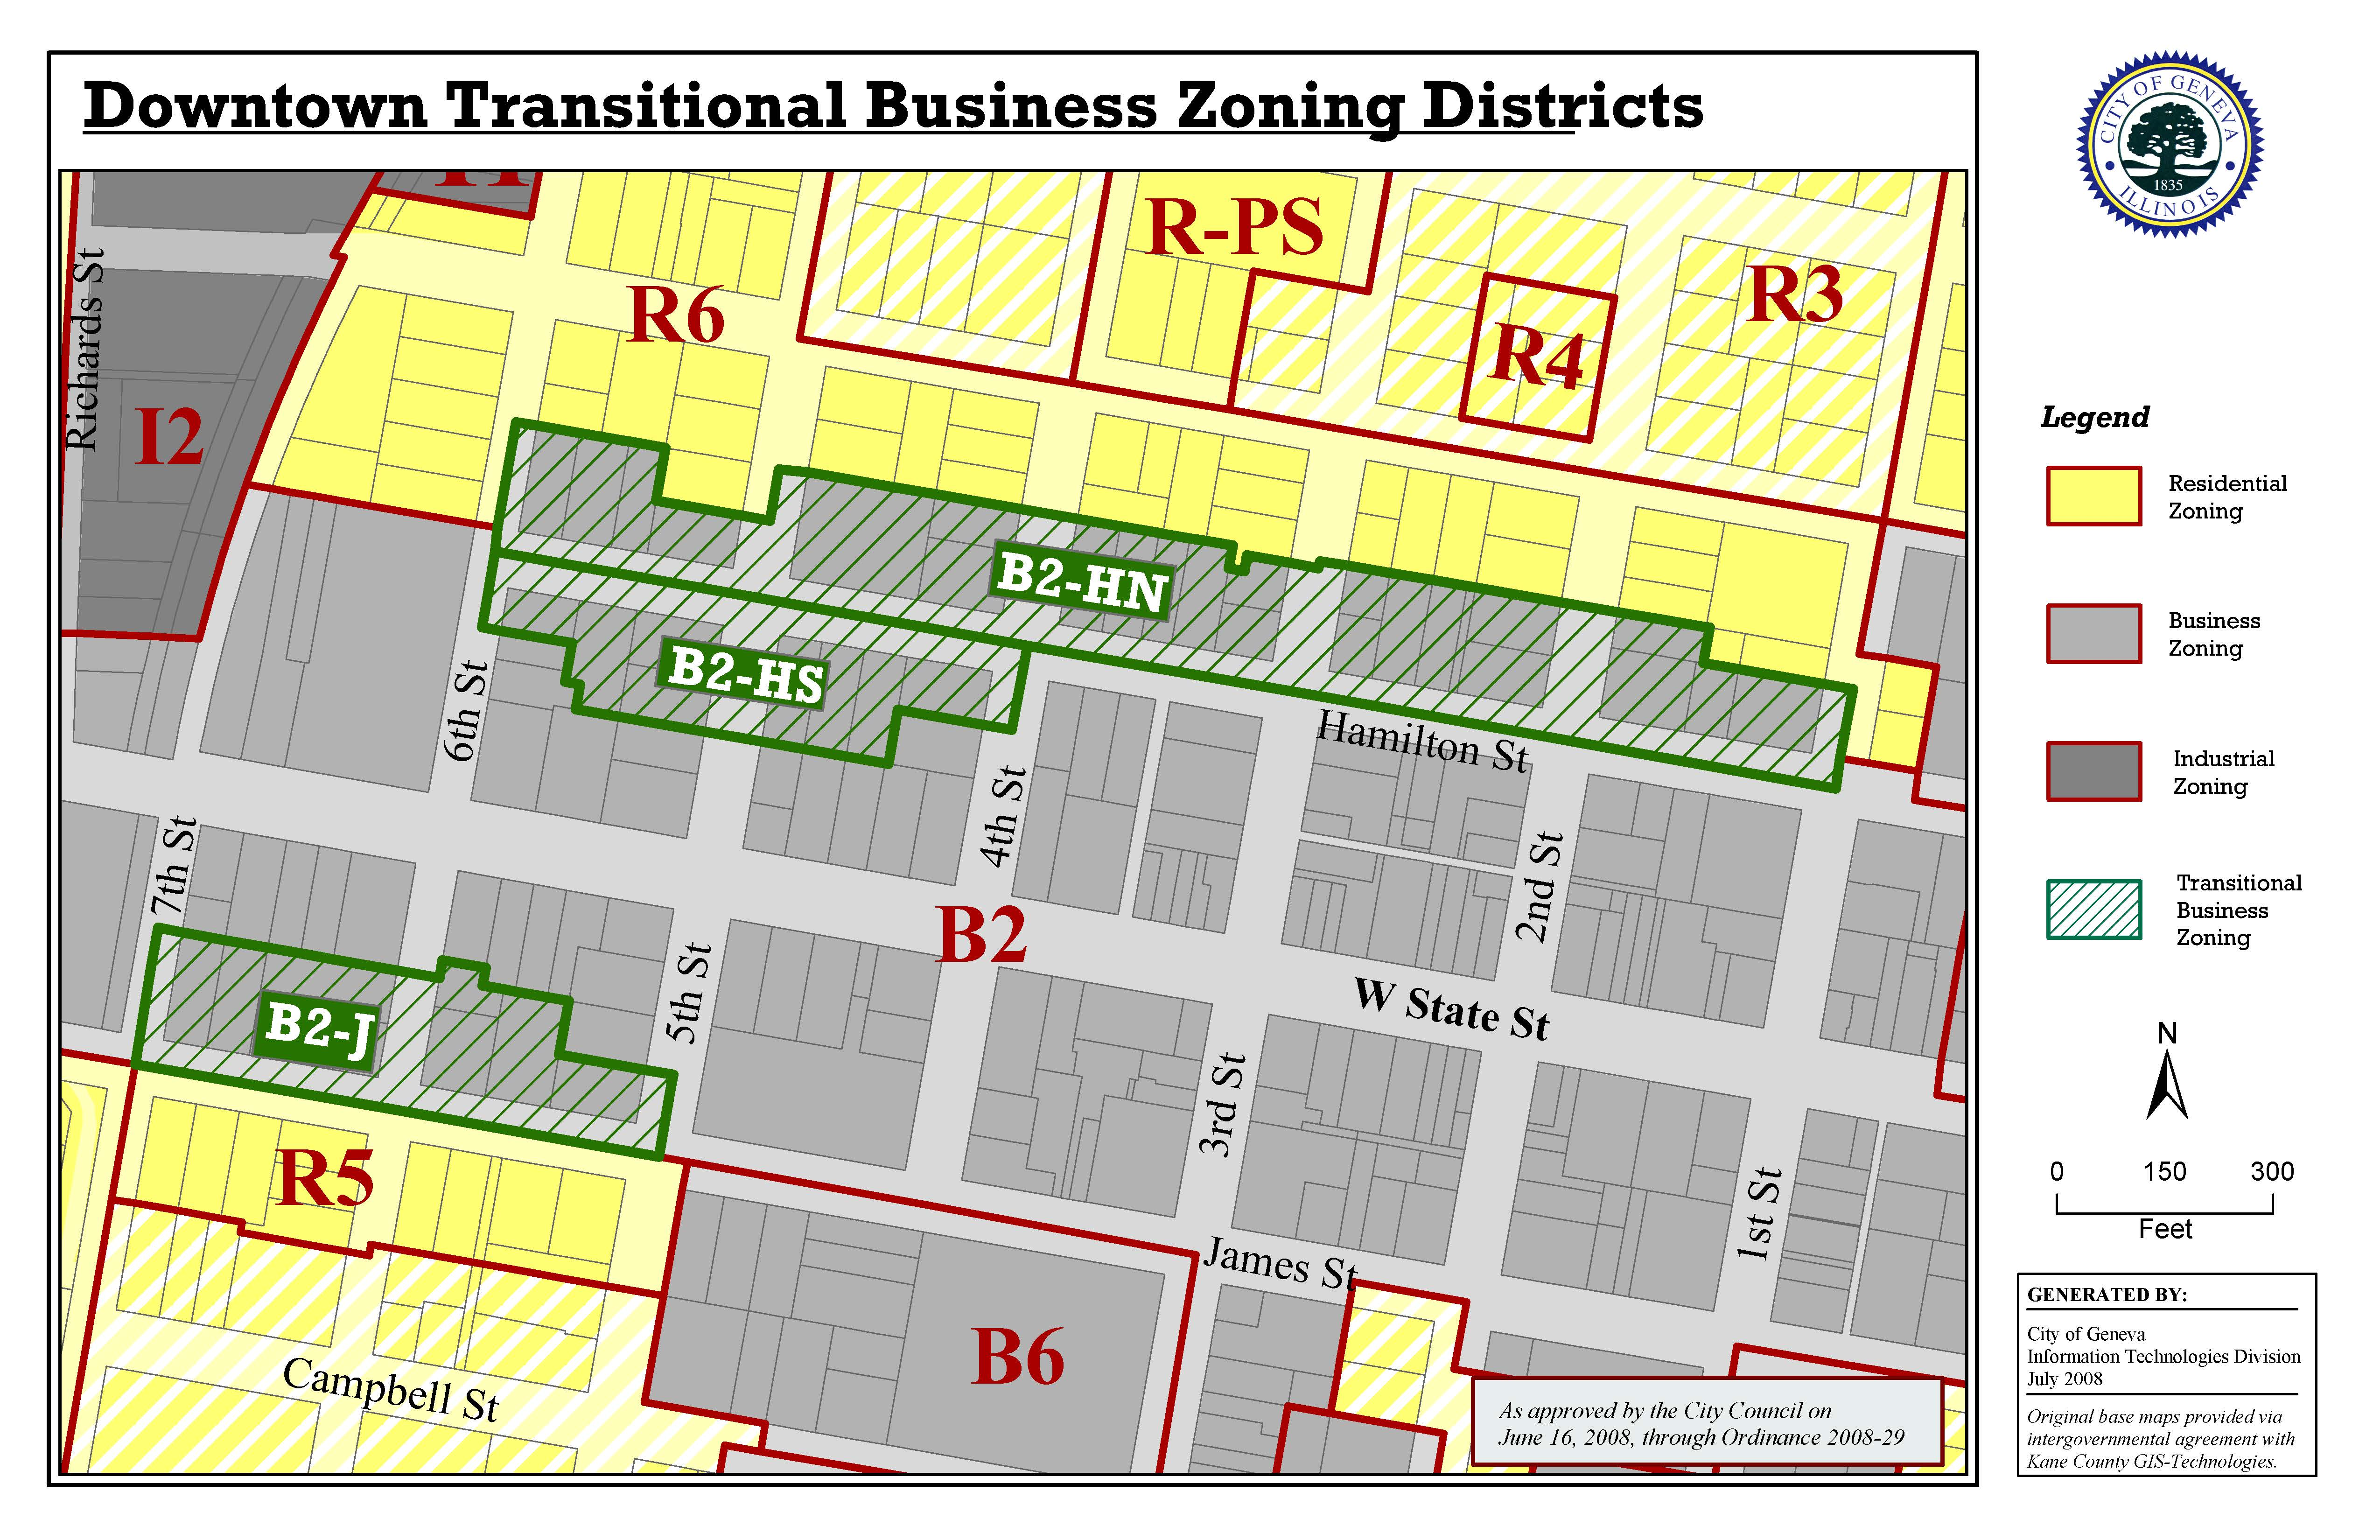 Transitional Business Zoning Districts